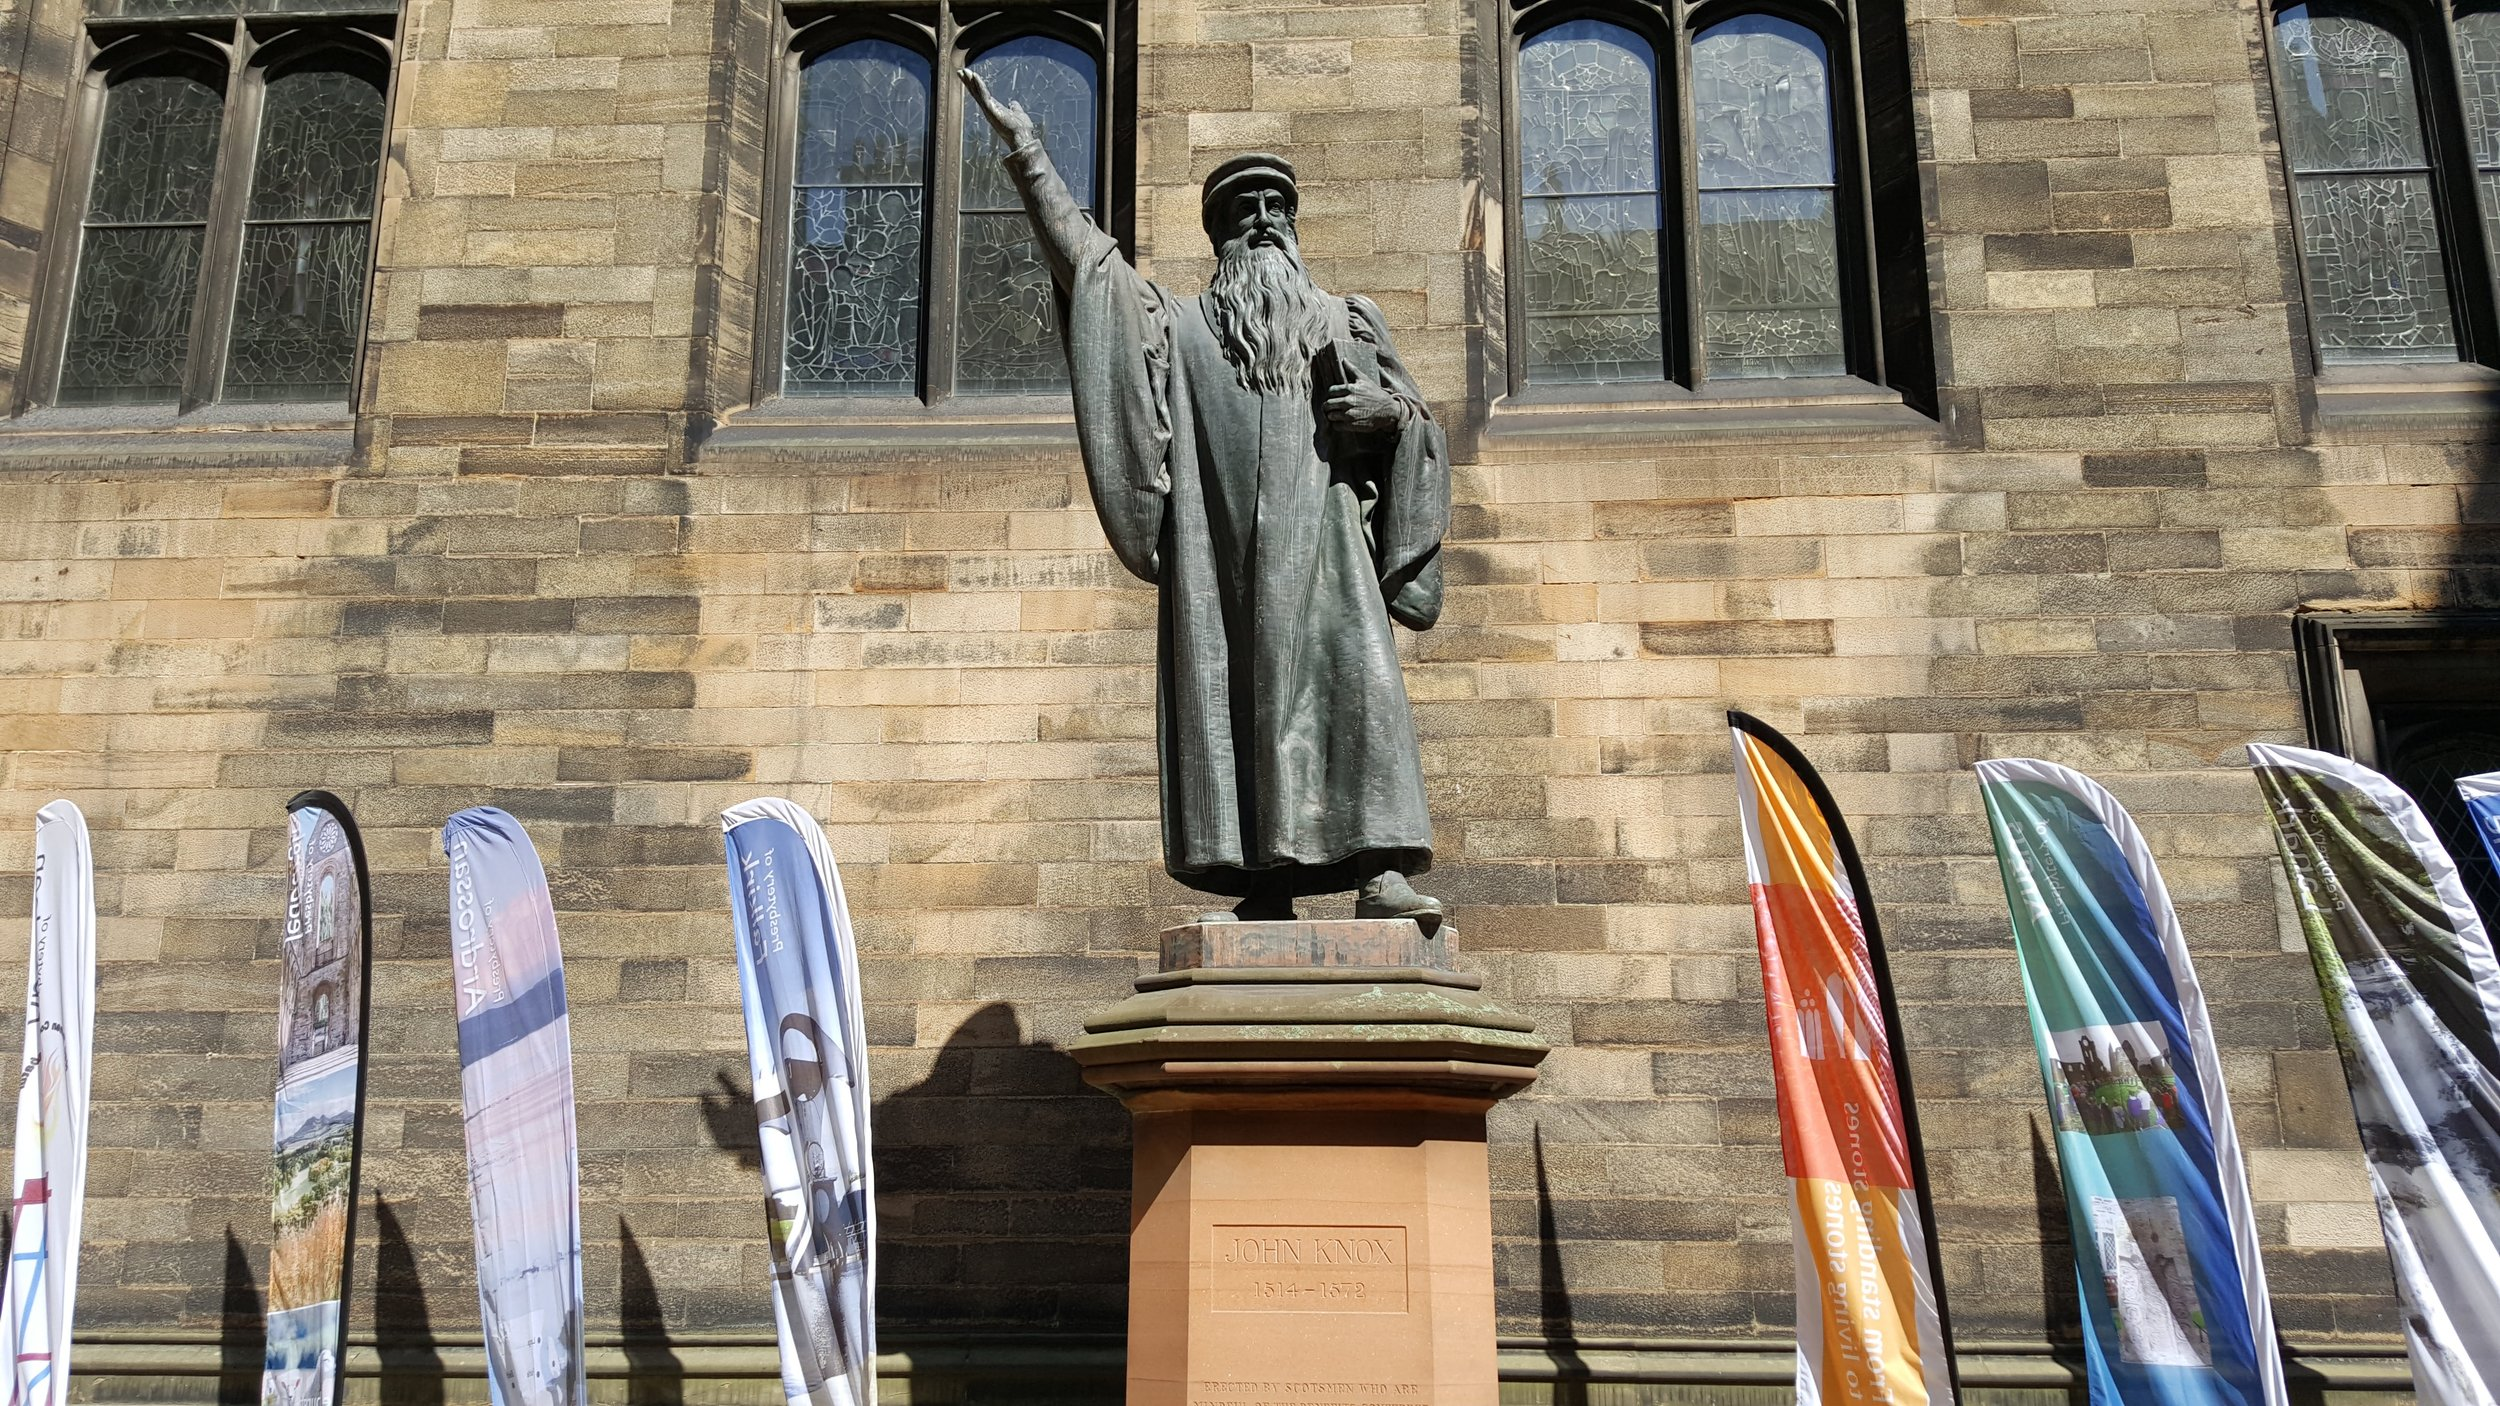 The church is named after the 16th century leader of the Reformation in Scotland, John Knox,considered to be the founder of the Church of Scotland.